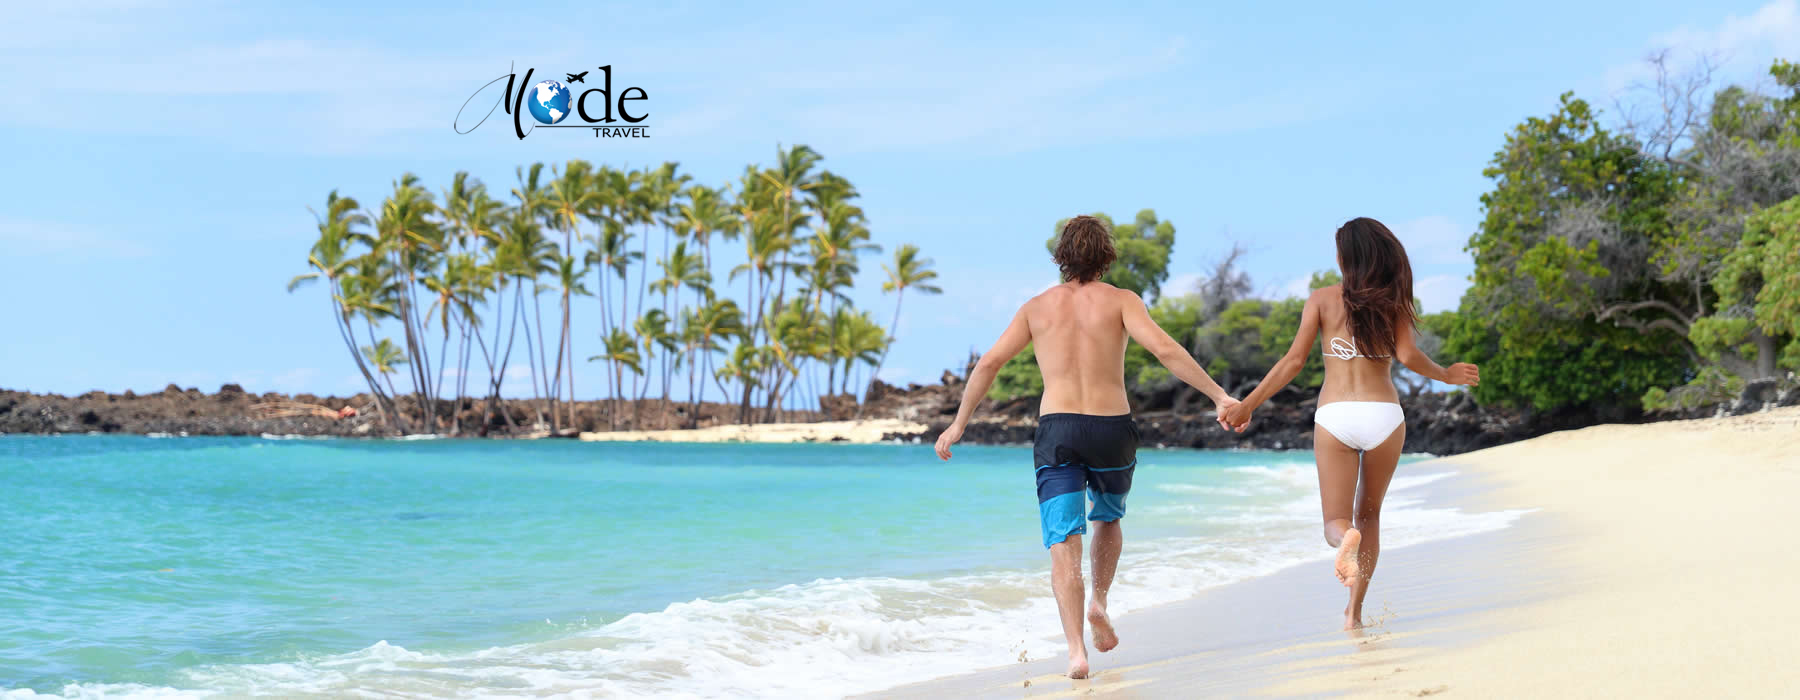 Travel the World with Kate – Independent Travel Advisor with Mode Travel